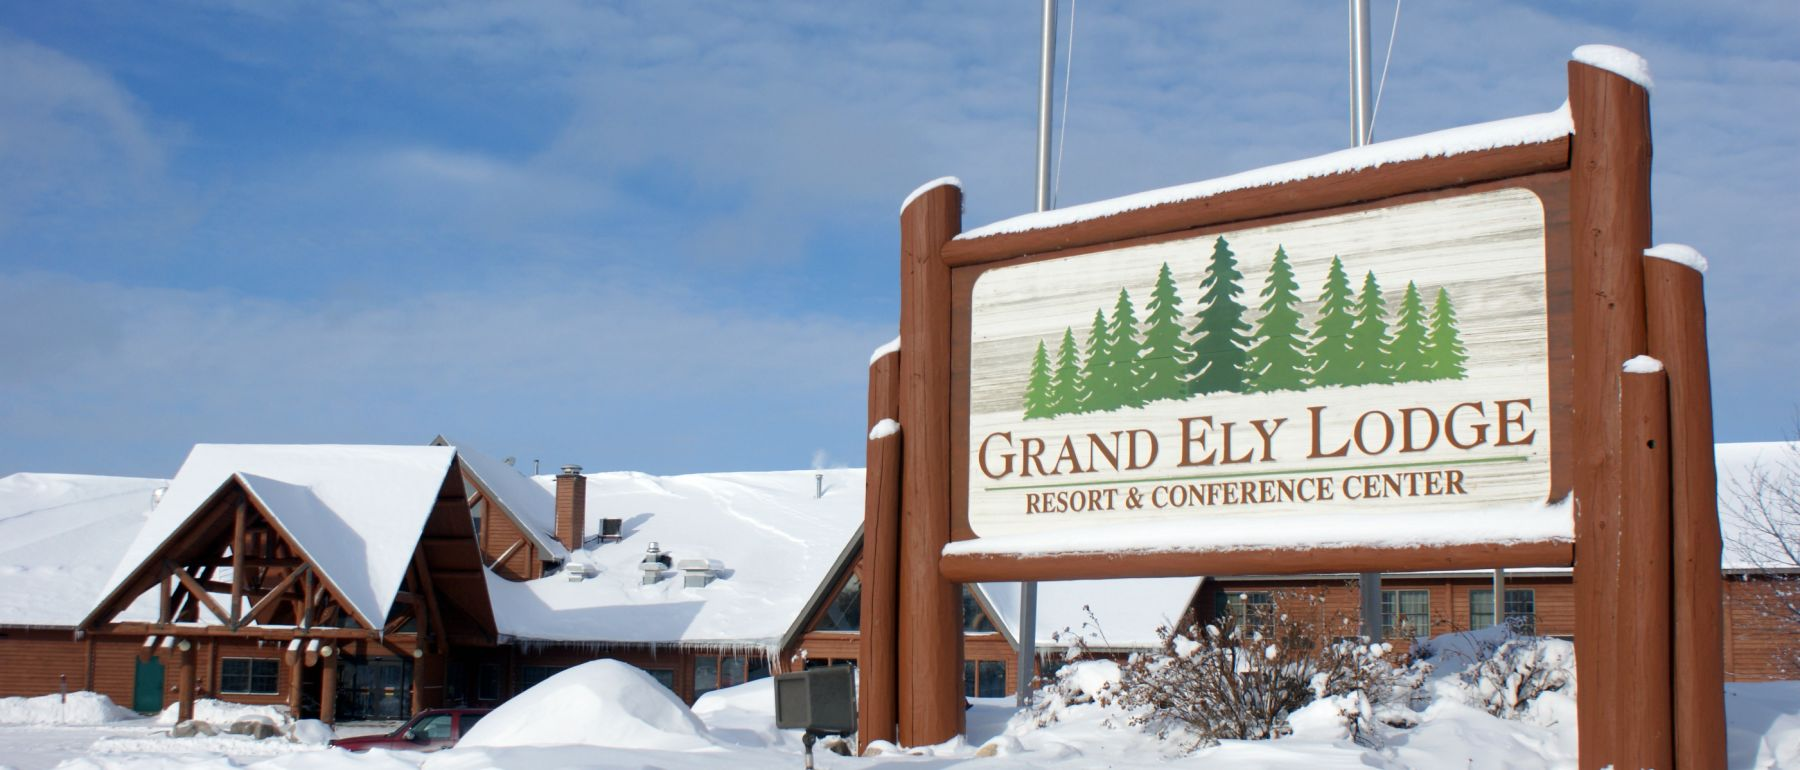 Grand Ely Lodge entrance sign during the winter wonderland special offers